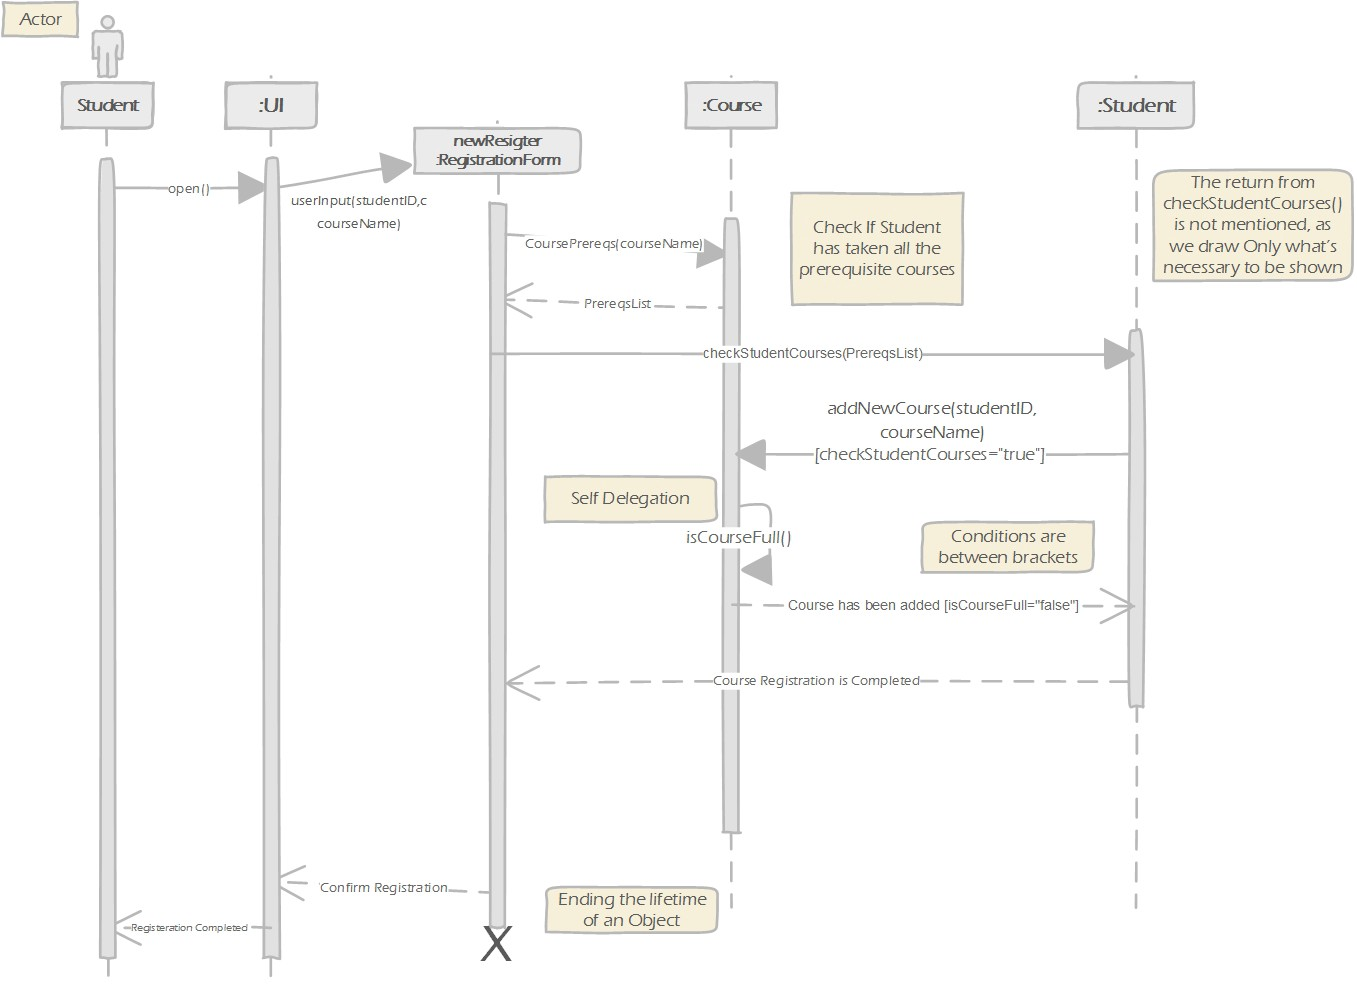 ../../_images/uml-sequence-diagram.jpg